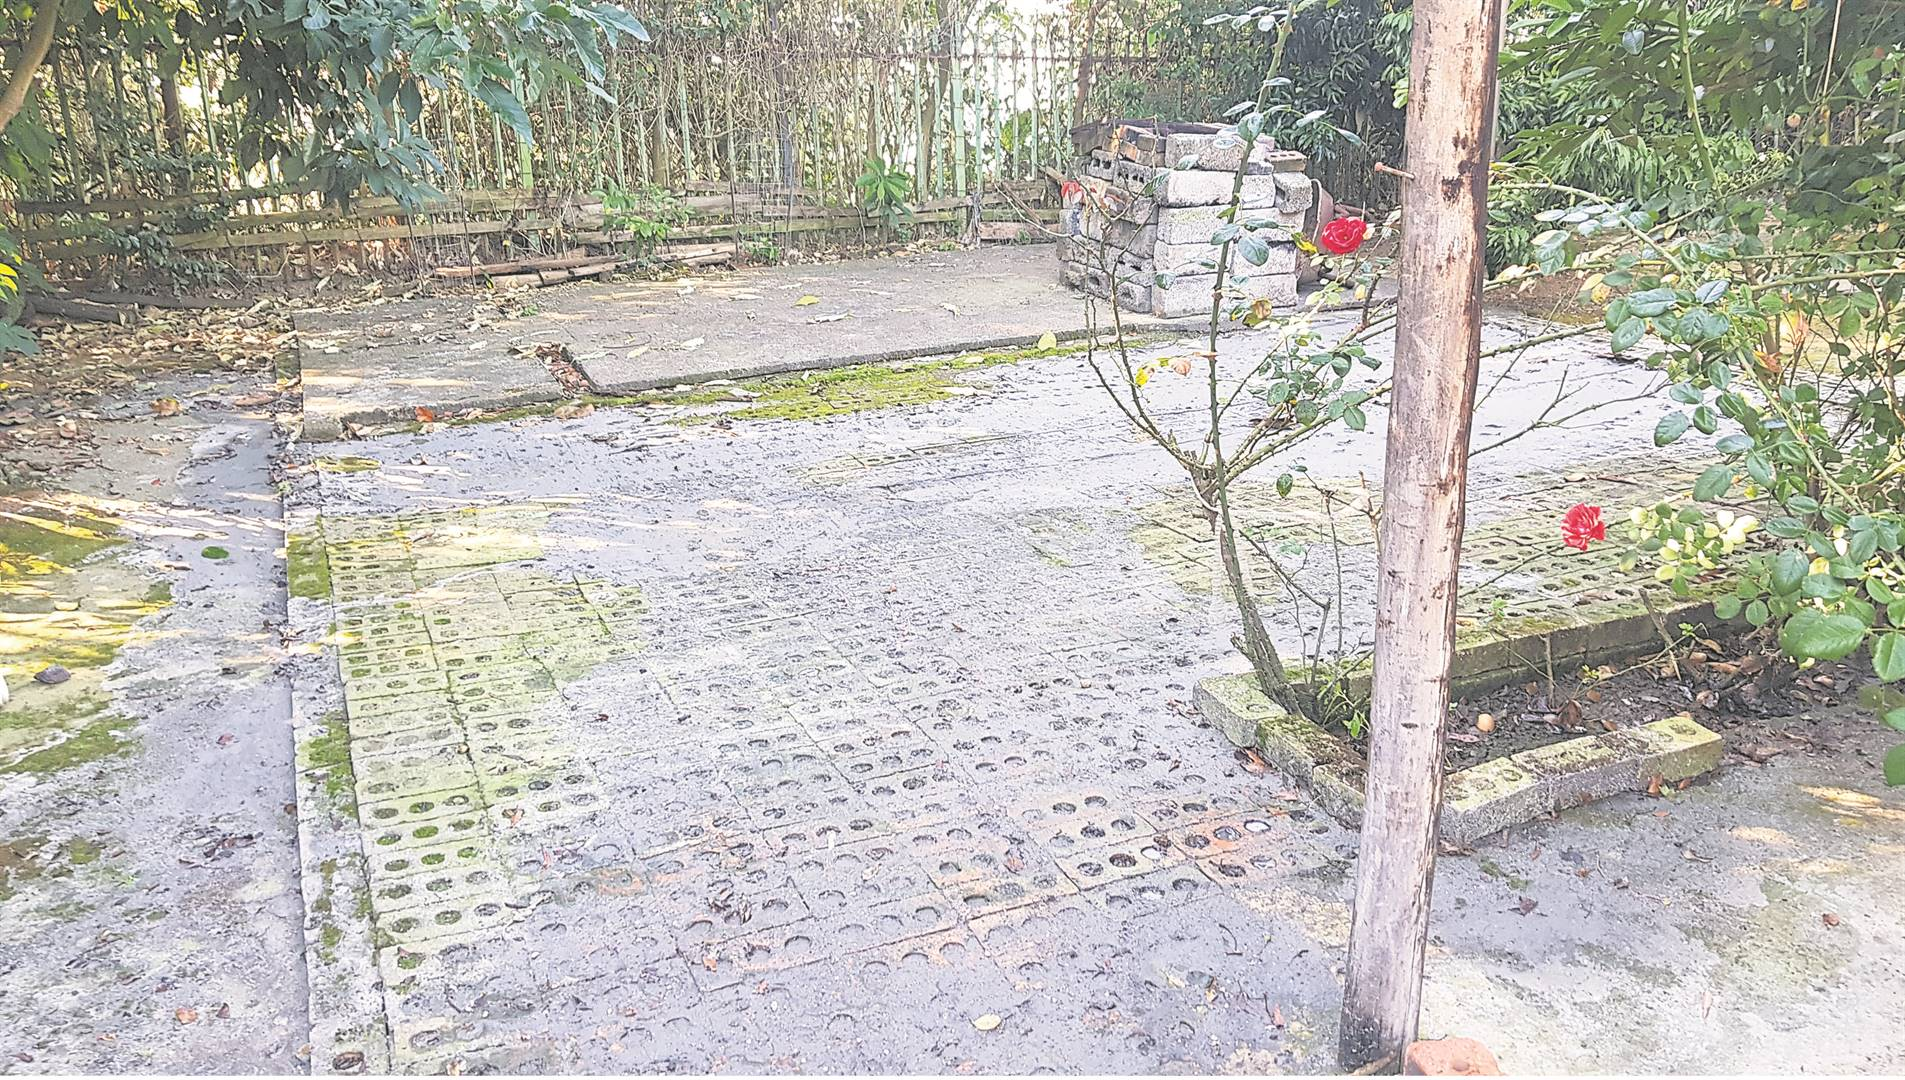 The aftermath of the municipality's efforts to remove sewage waste from the Padayachee's yard. The yard is now covered in sewage residue after the manhole erupted during the removal process. PHOTO: byrone athman